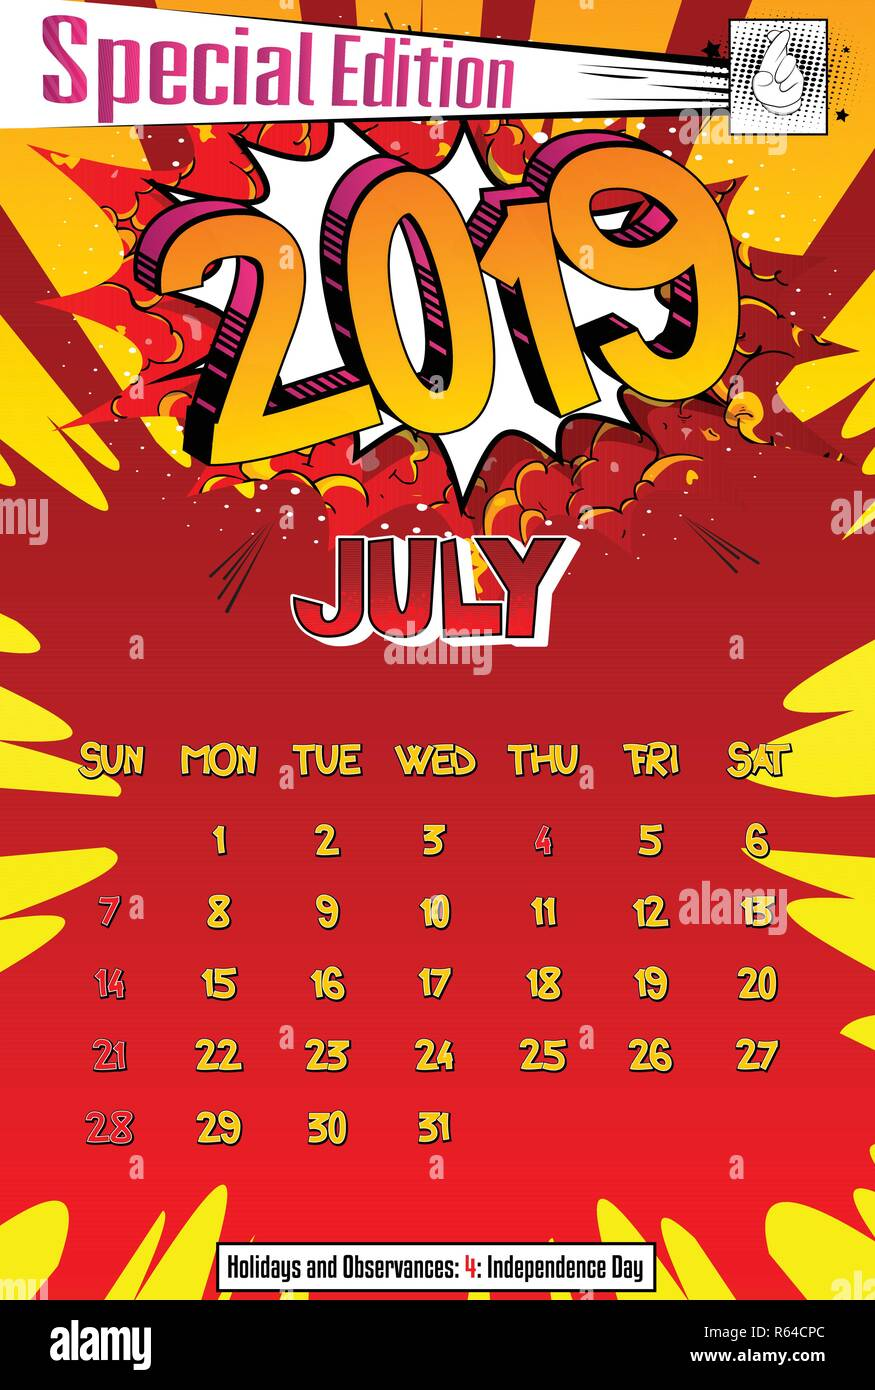 Calendario Julio 2019 Vector.2019 Retro Style Comic Book Calendar Template For July Pop